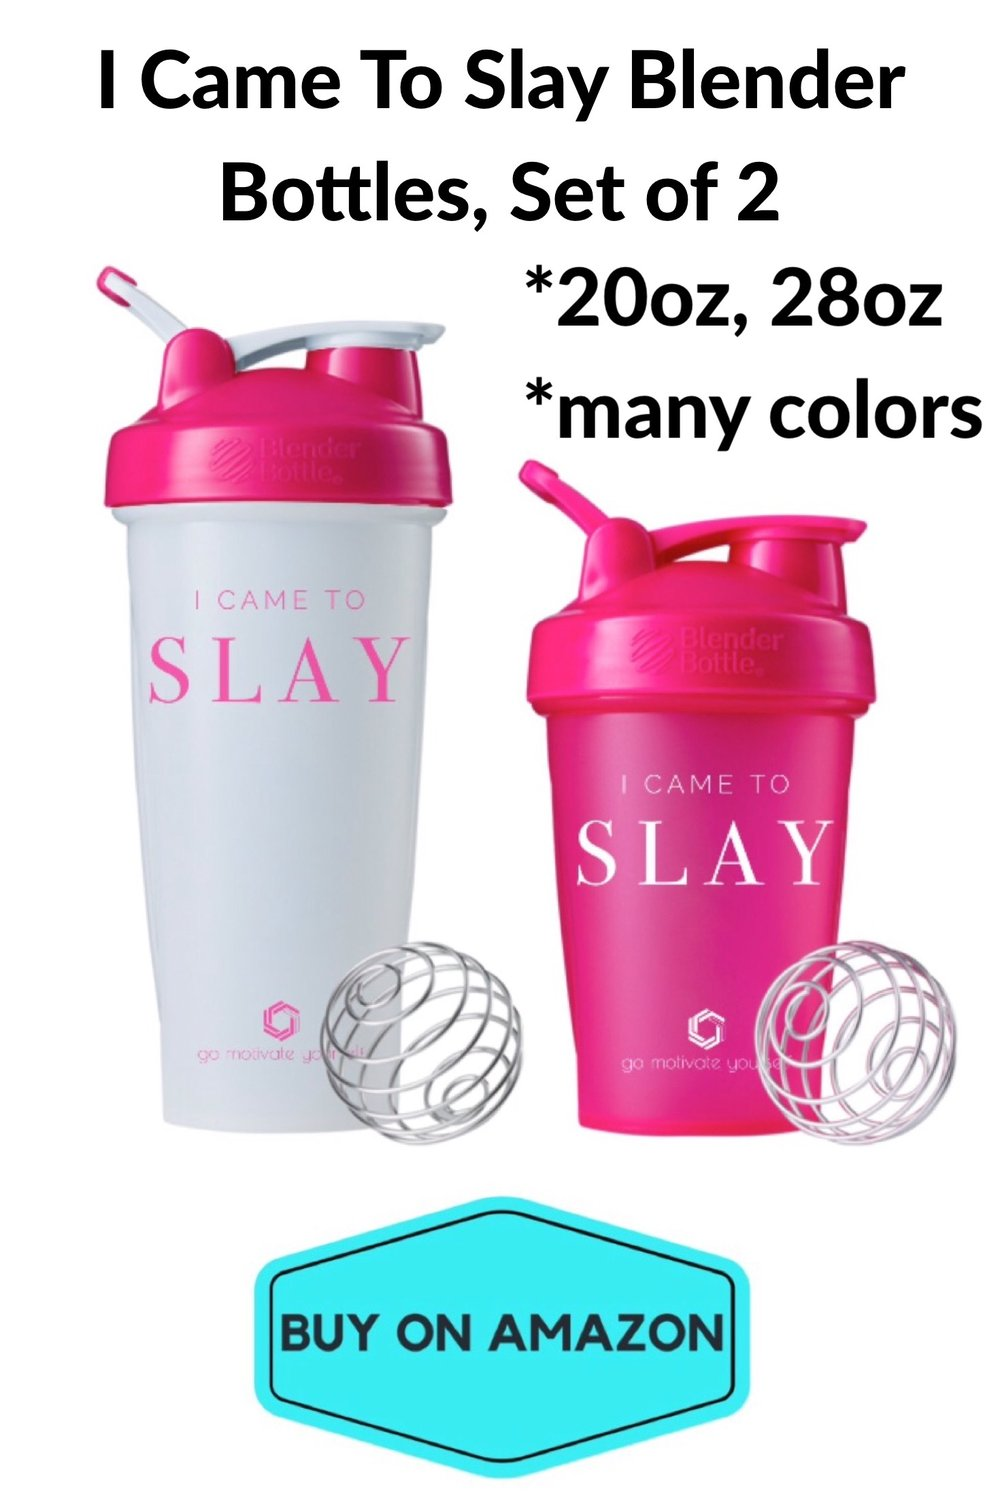 'I Came To Slay' Blender Bottles, Set of 2